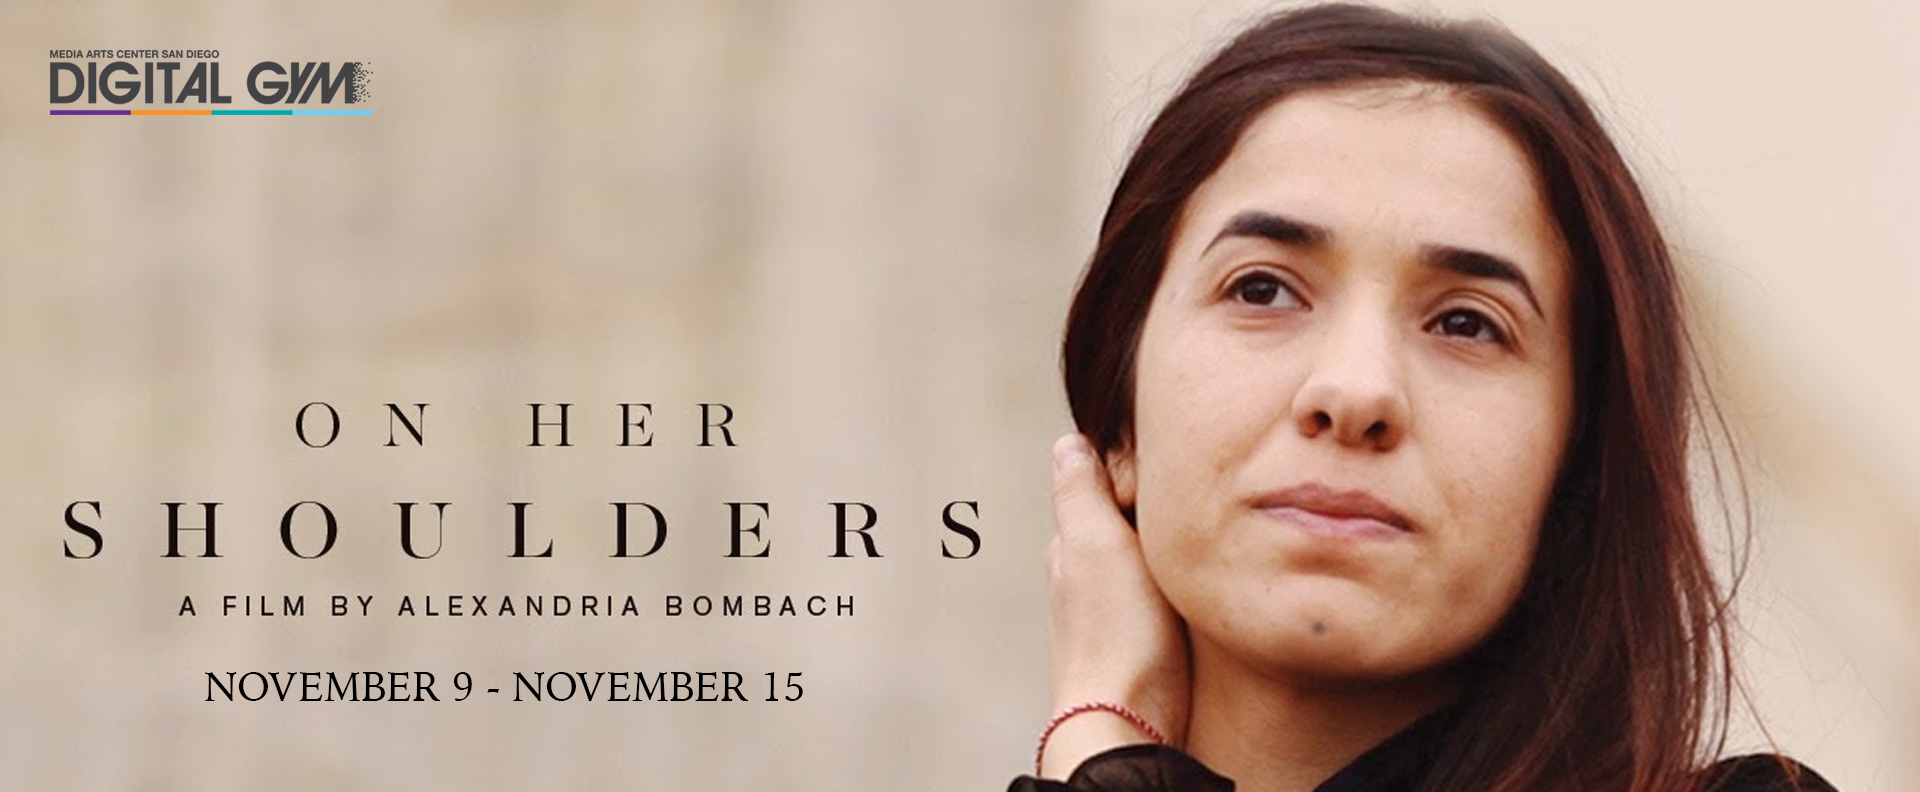 On Her Shoulders (November 9 – November 15)